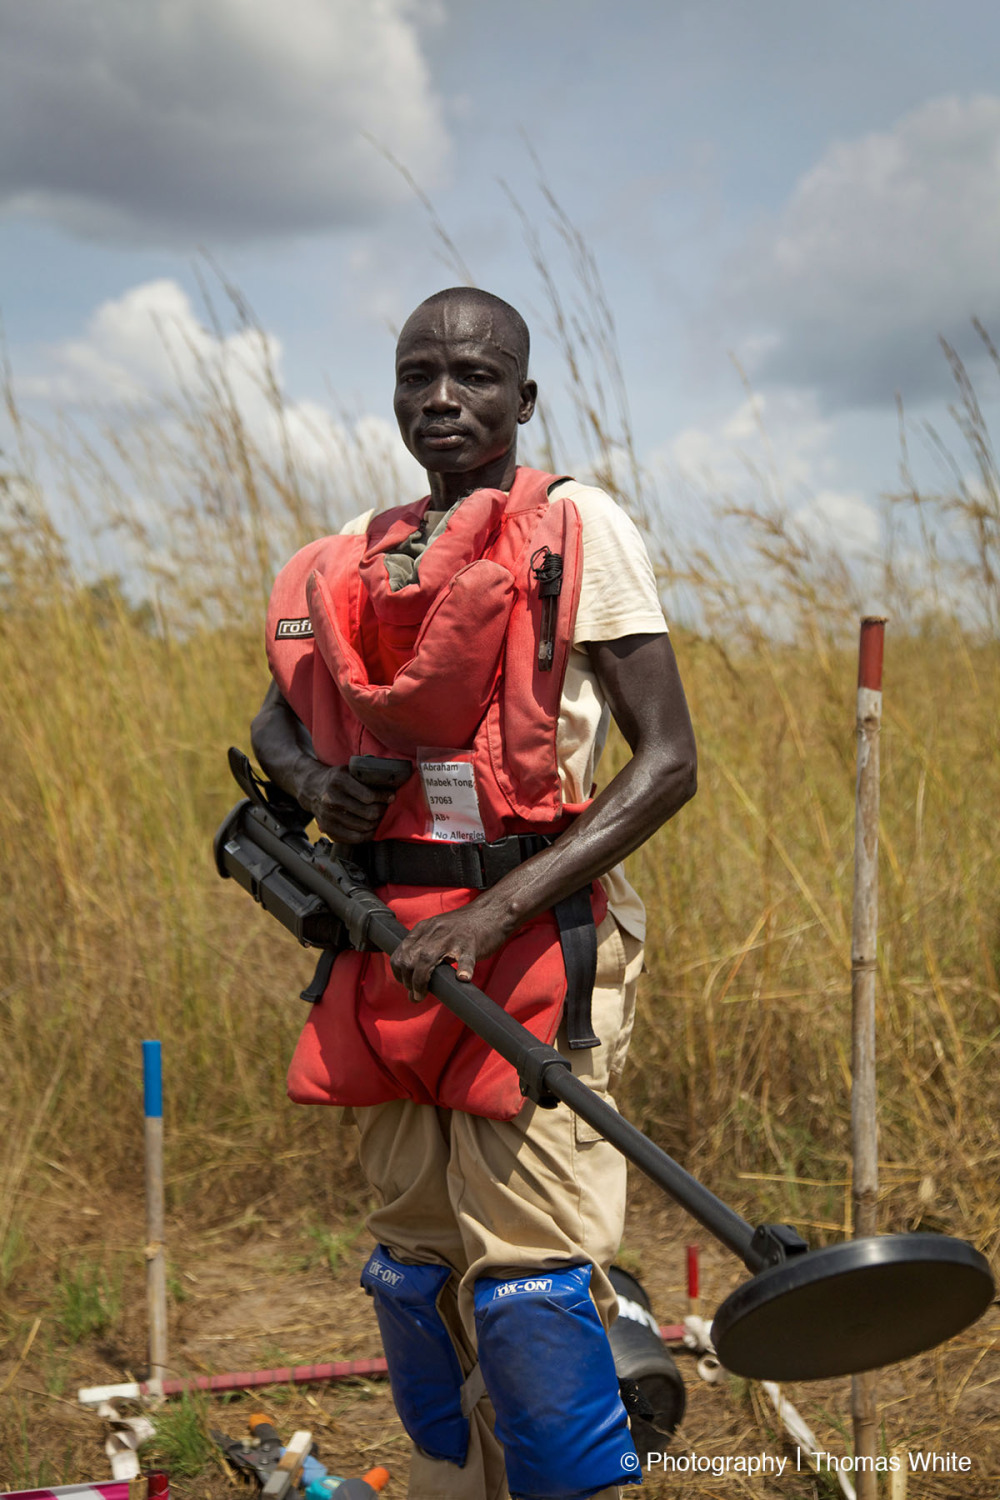 Clearing landmines in South Sudan V